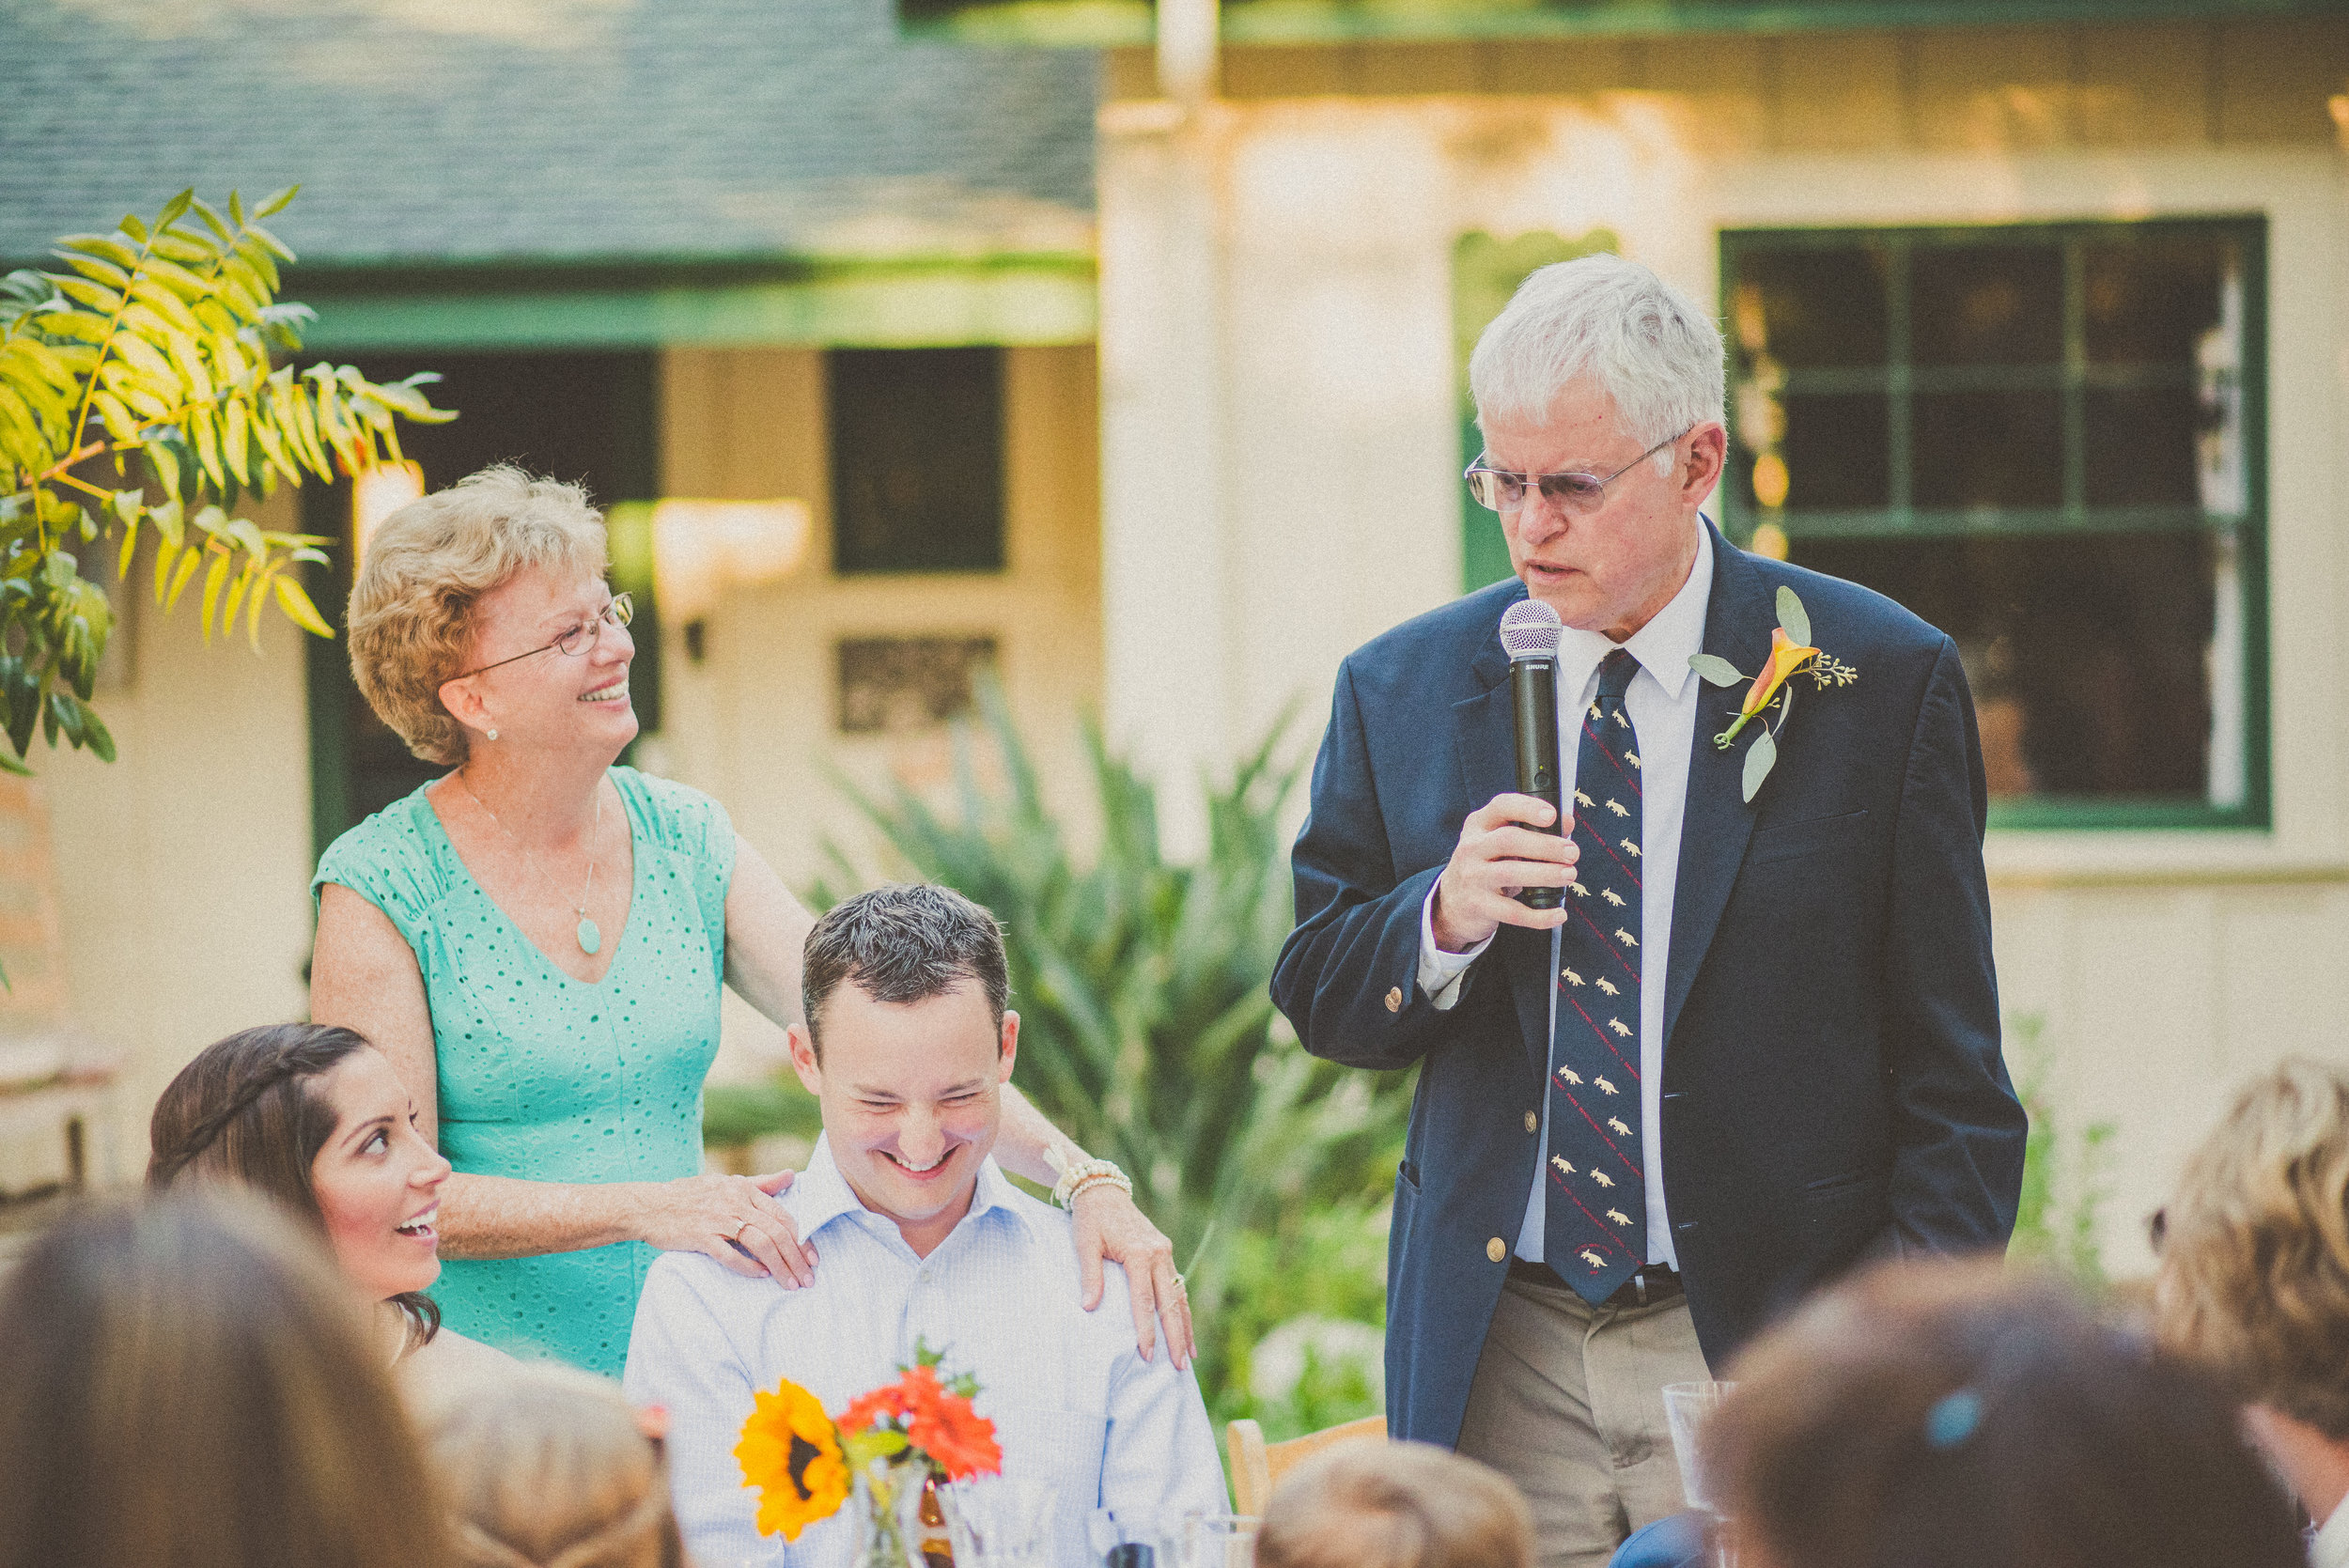 McDonald Wedding - Reception-17.jpg